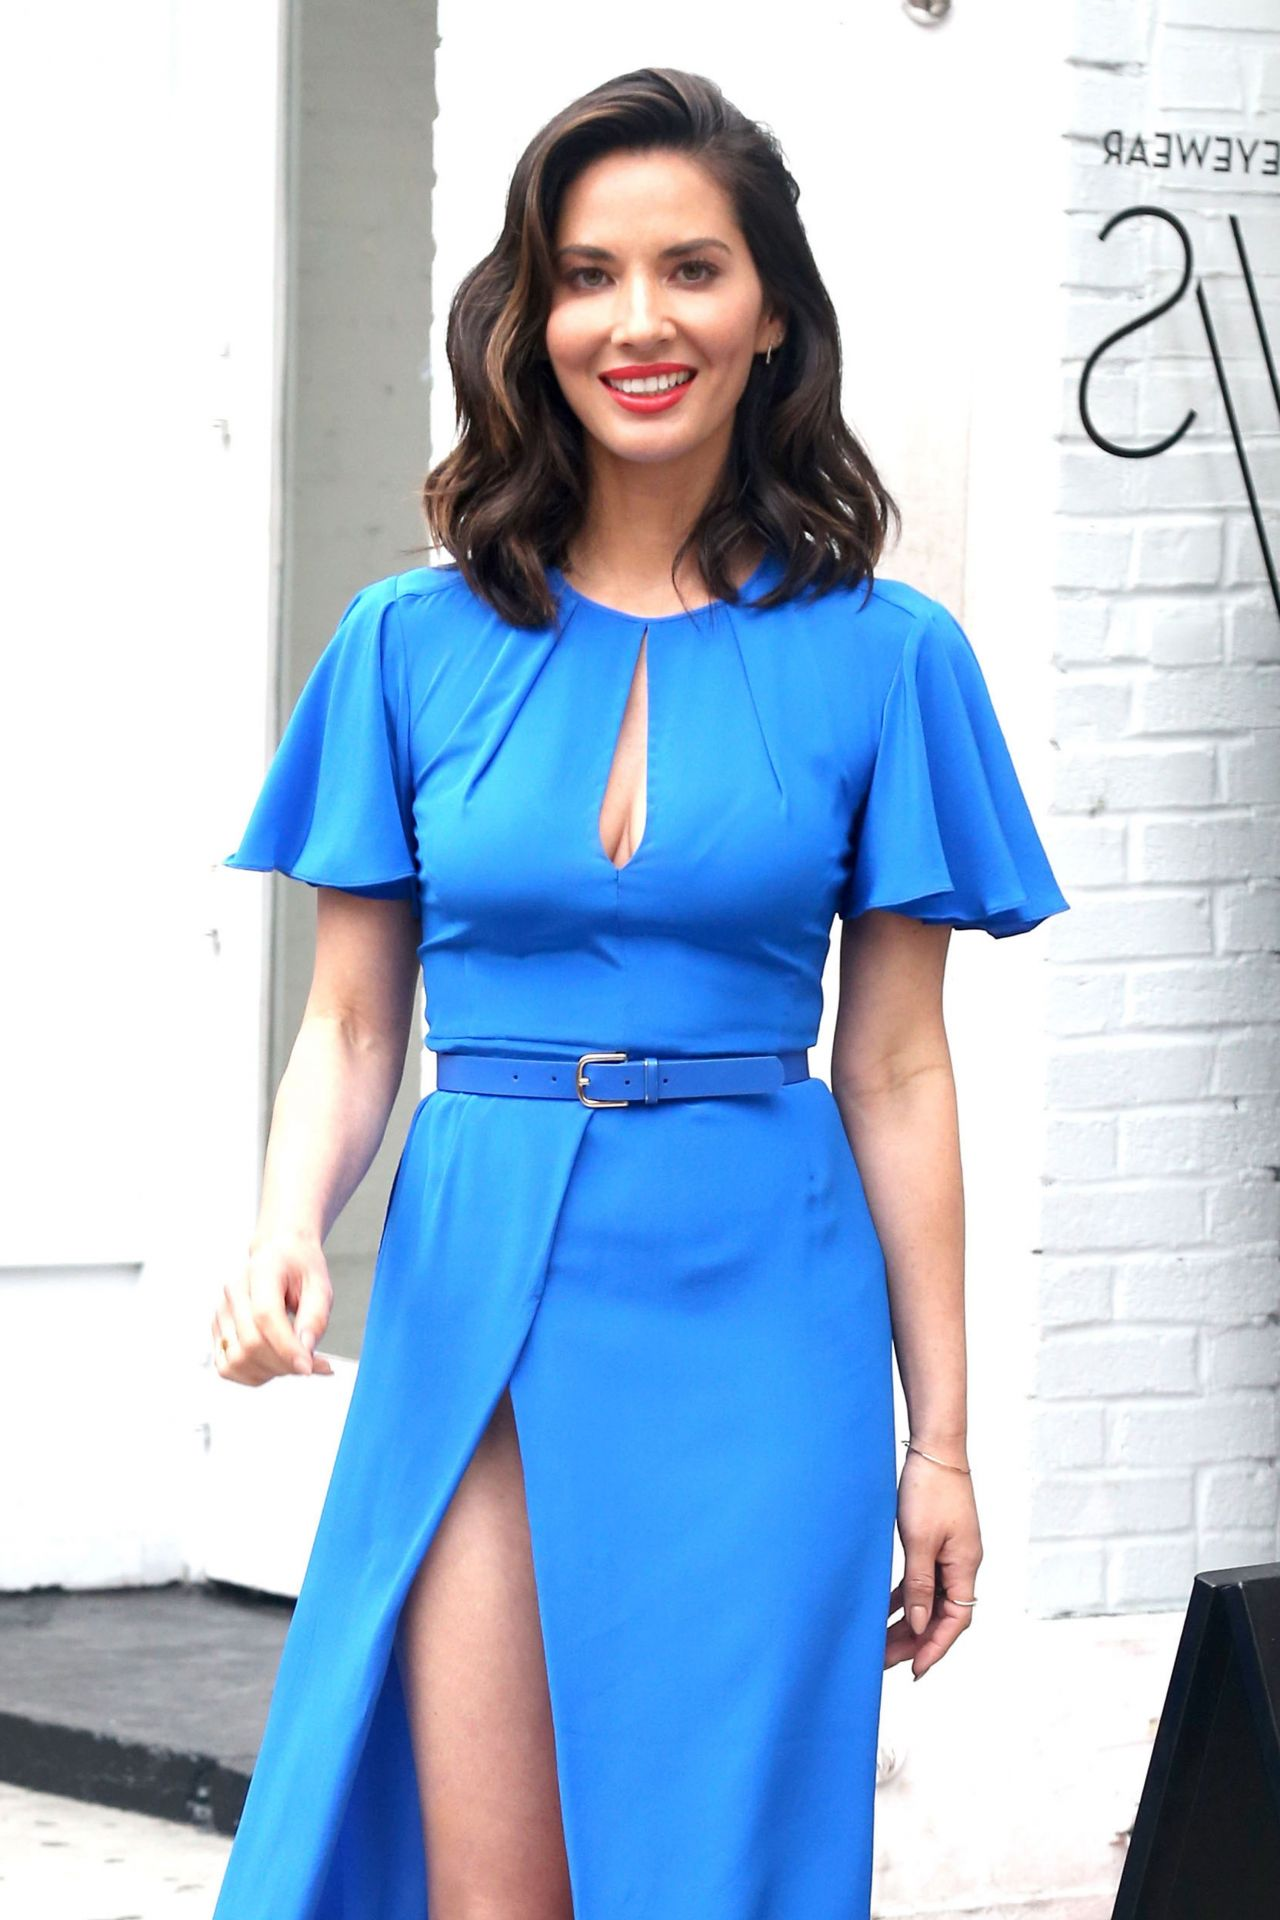 Olivia Munn blue dress, cleavage and heels